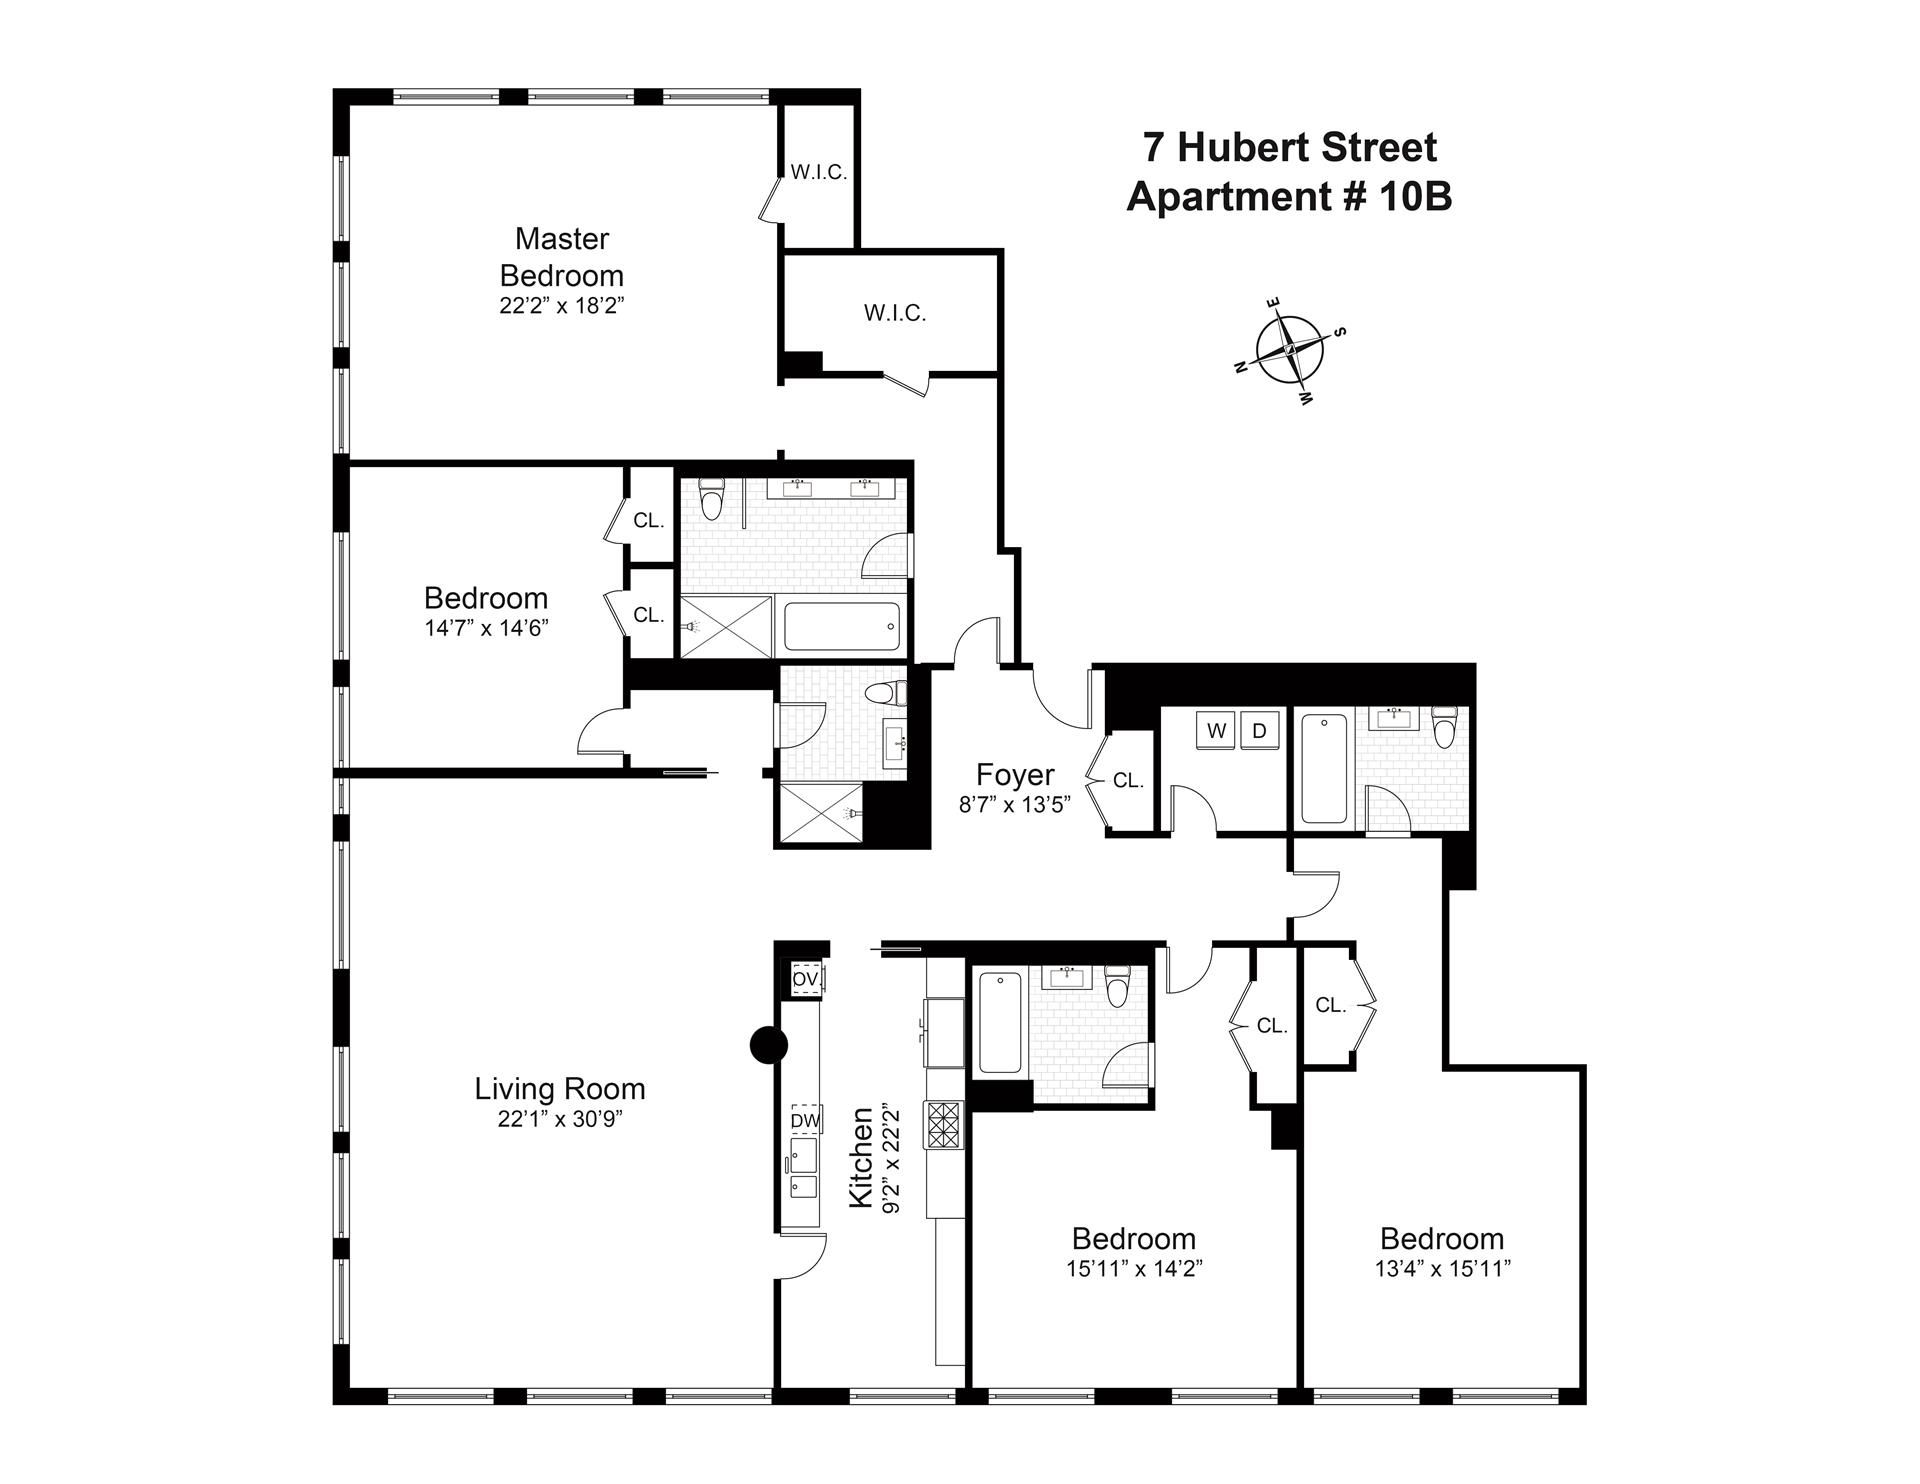 Floor plan of 7 Hubert St, 10B - TriBeCa, New York